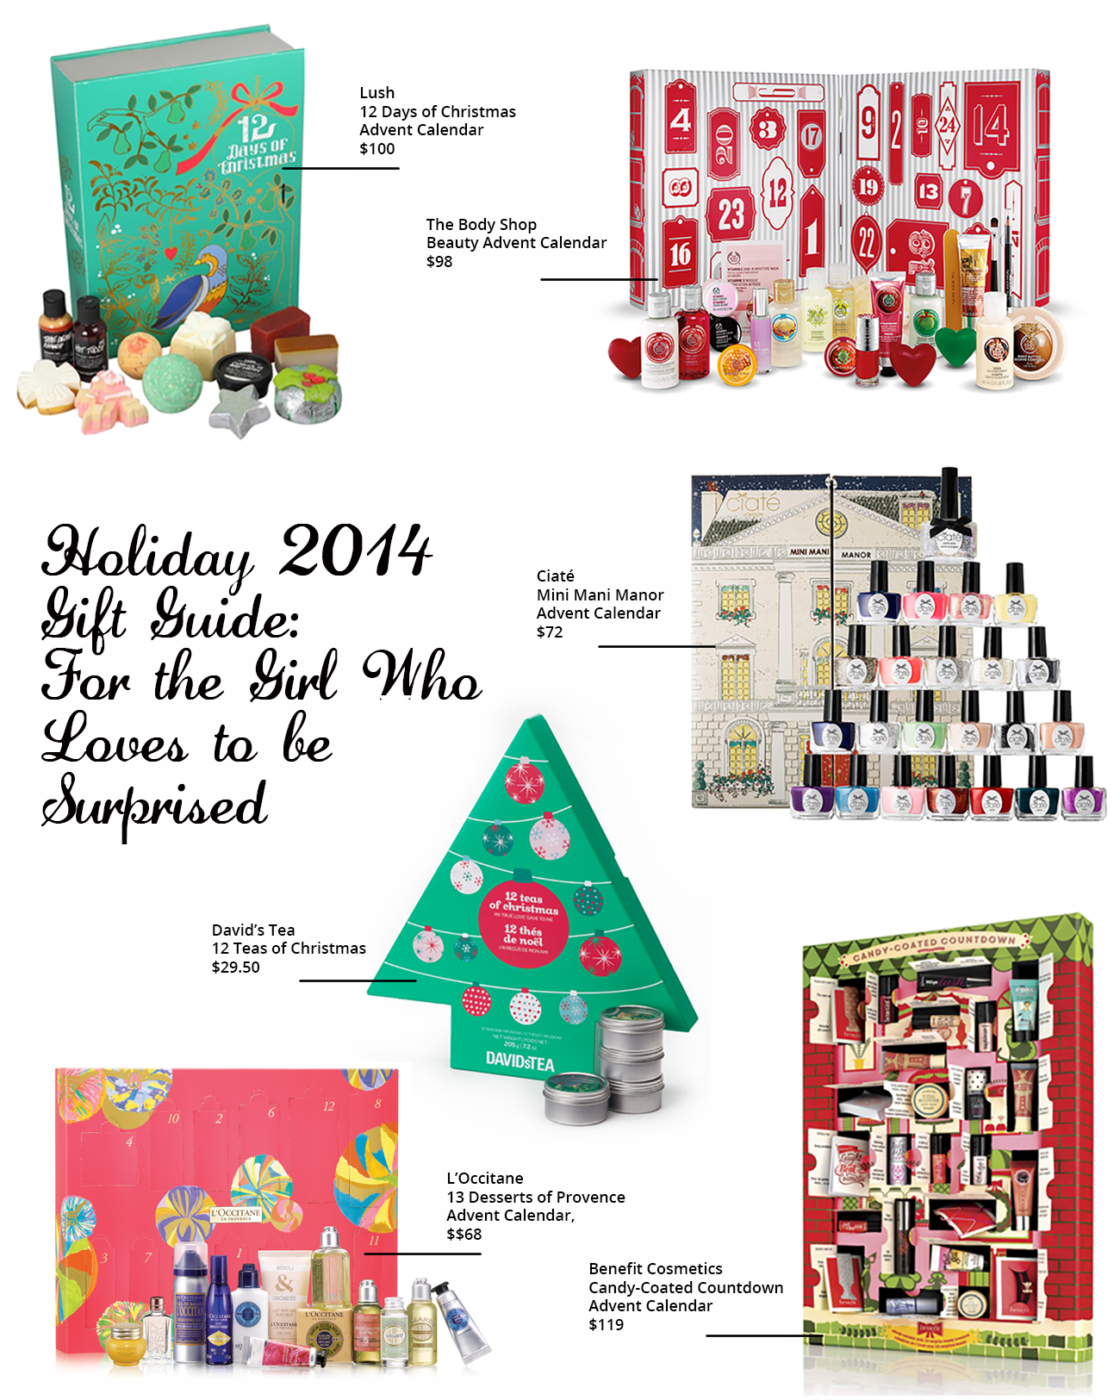 Christmas Calendar 2014 : Holiday gift guide beauty advent calendars